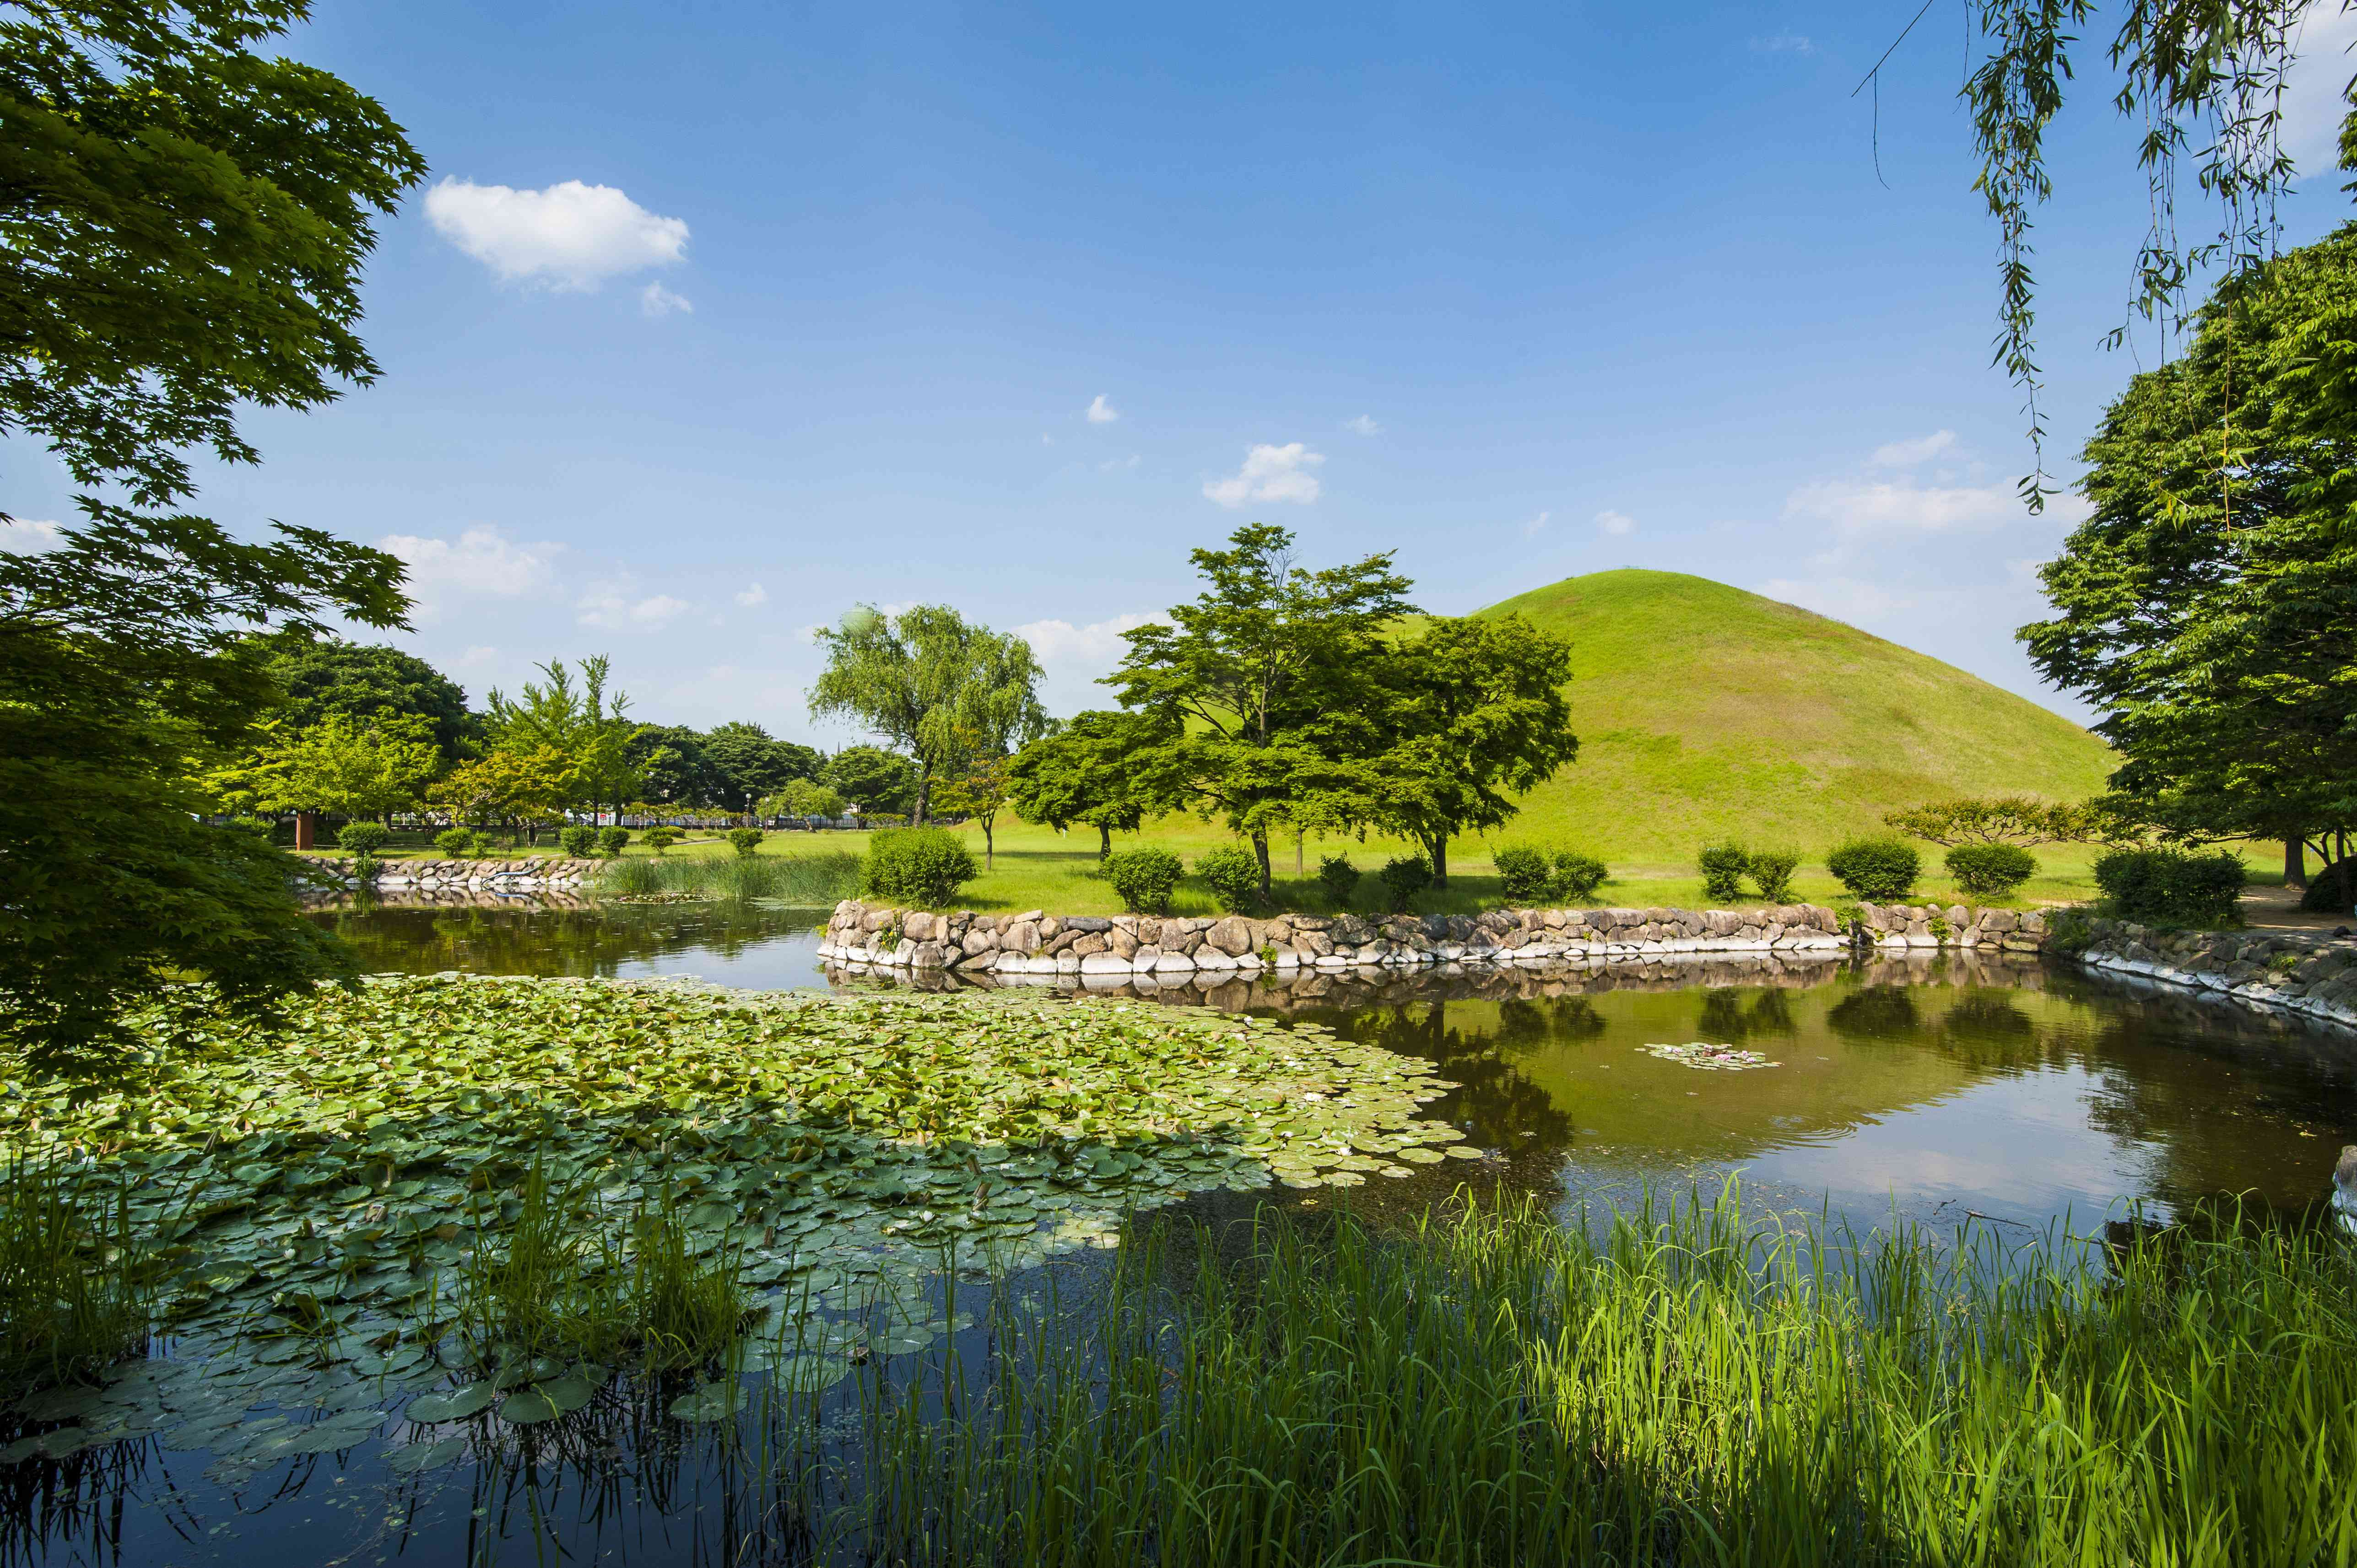 Tumuli park with its tombs from the Shilla monarchs, Gyeongju